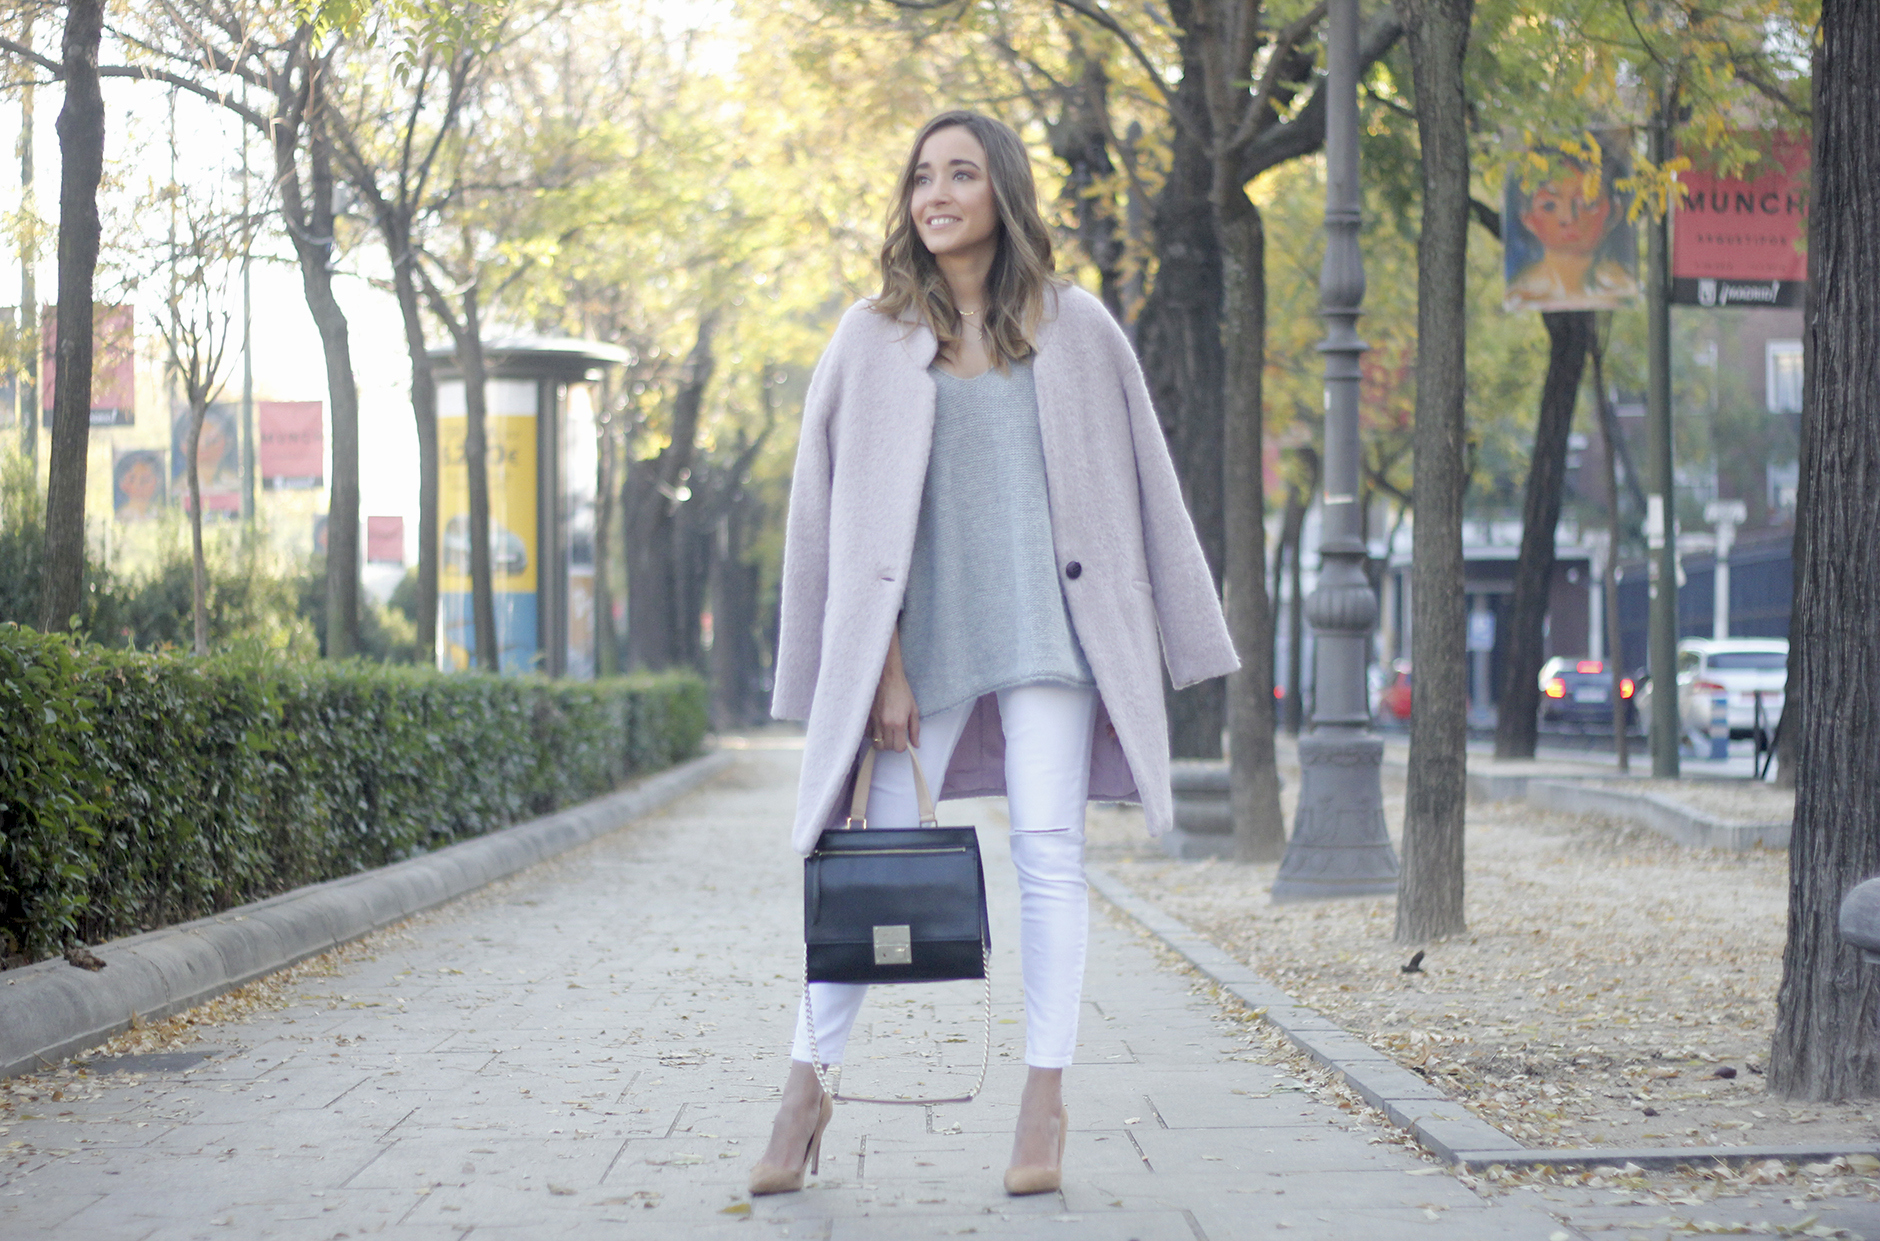 Tintoretto Pink Coat white jeans grey sweater outfit13